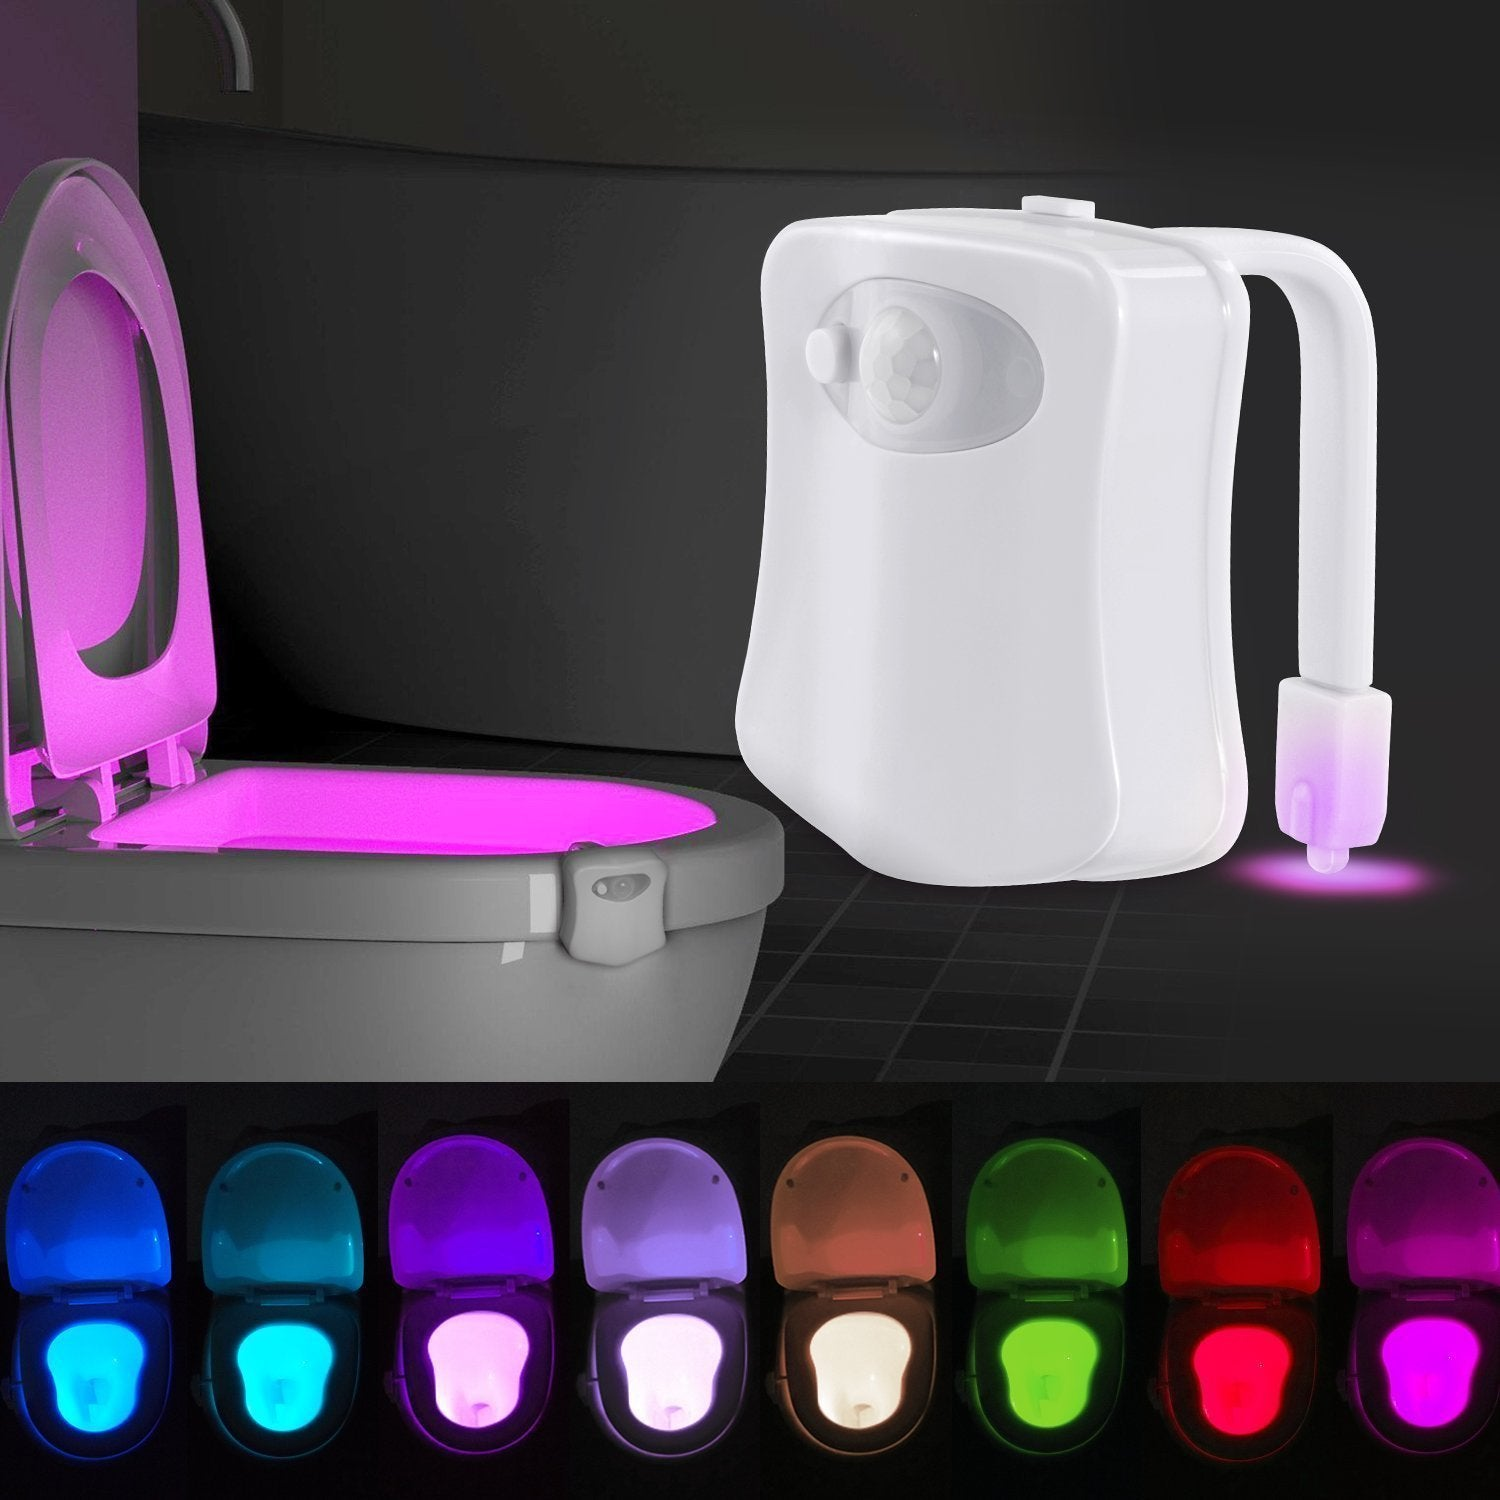 LED Toilet Bowl Seat Sensor Night Light